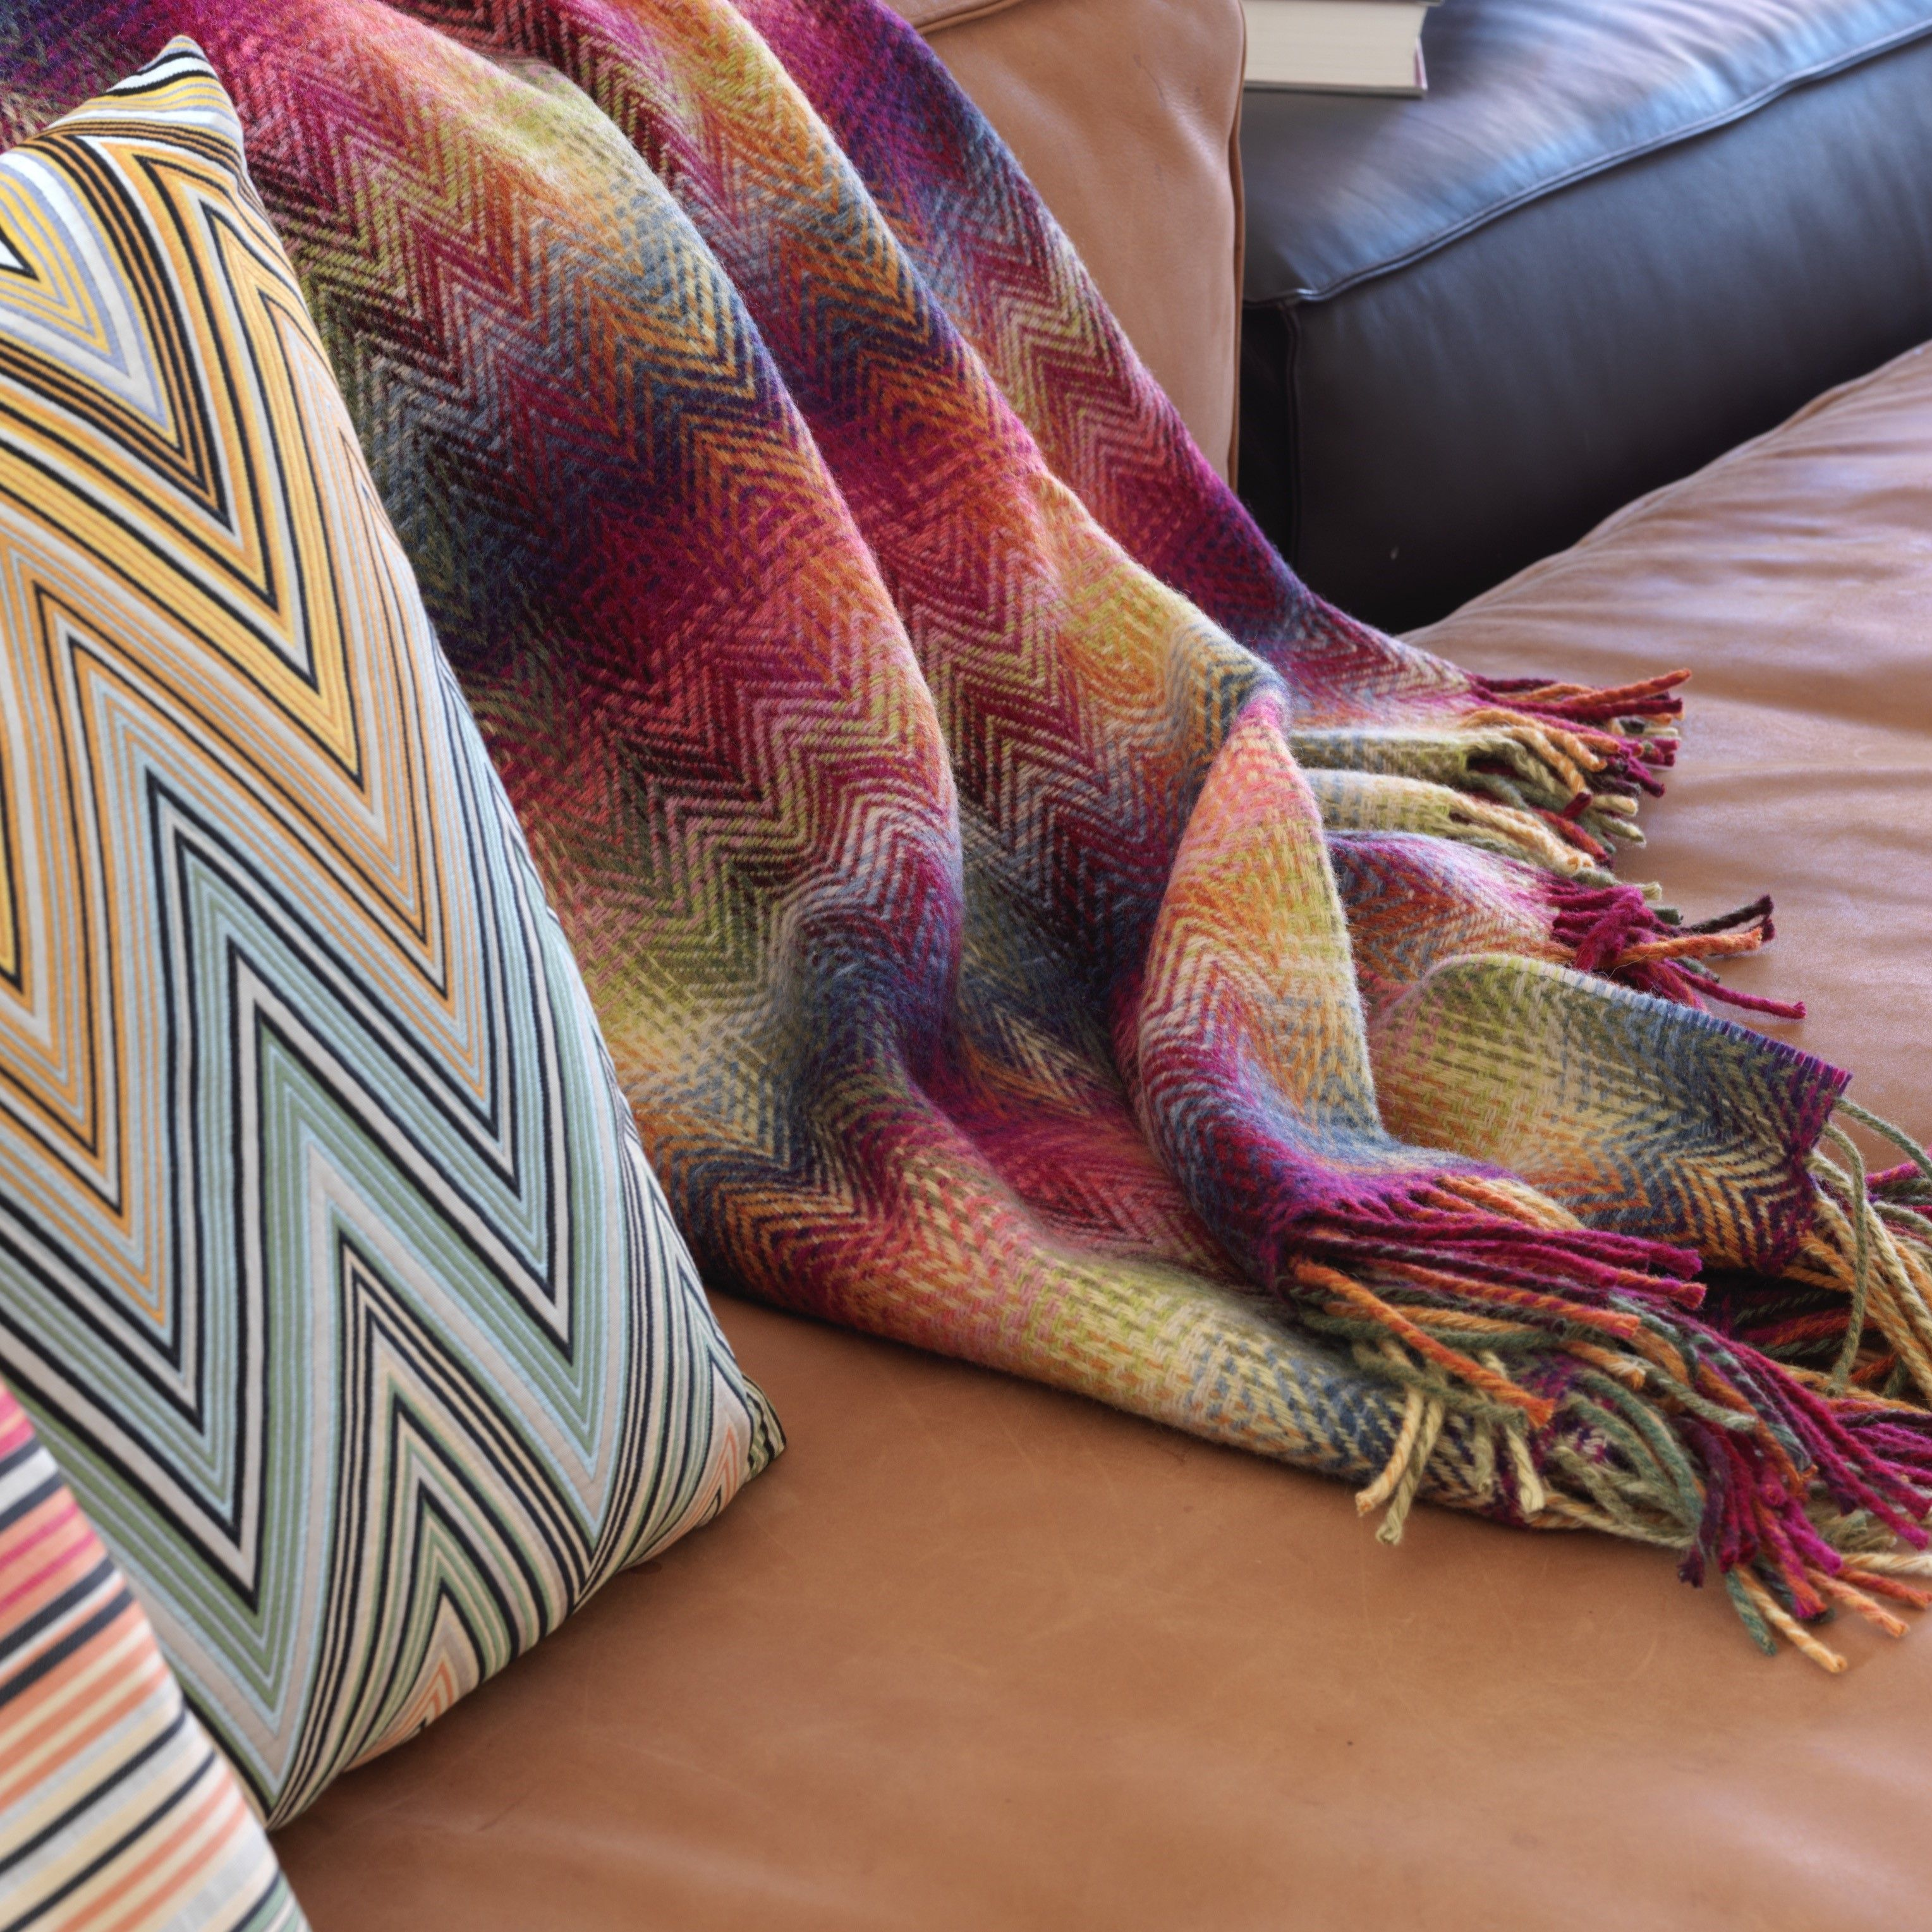 duvet sibilla pillow home collection cushion beautiful missoni pillows with stunning